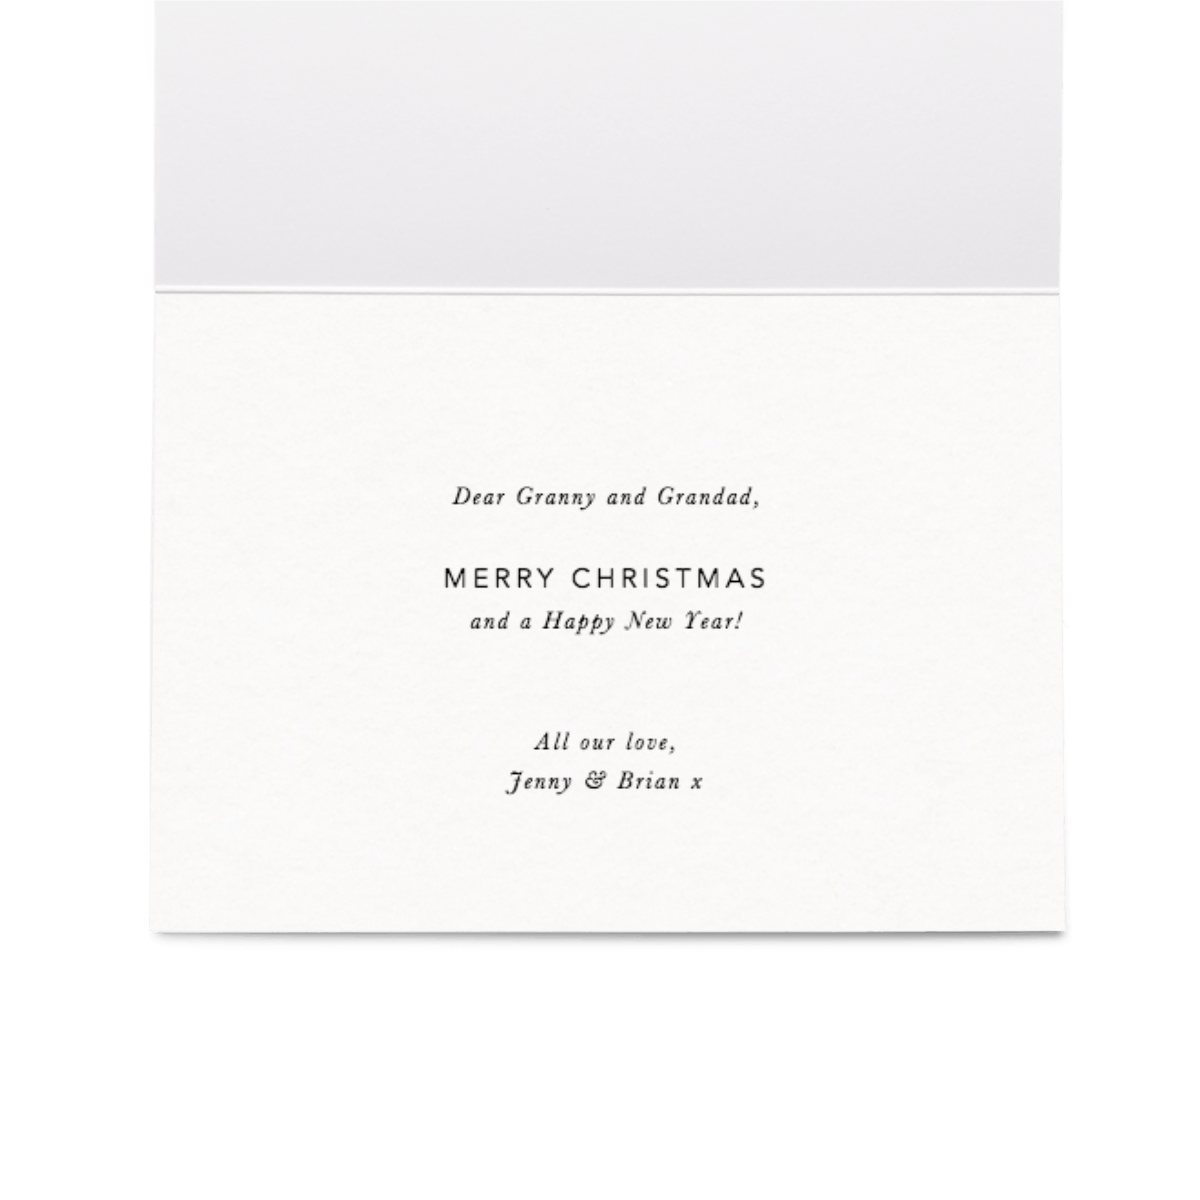 Https%3a%2f%2fwww.papier.com%2fproduct image%2f26912%2f20%2fmerry christmas photo 6723 inside 1502796051.png?ixlib=rb 1.1